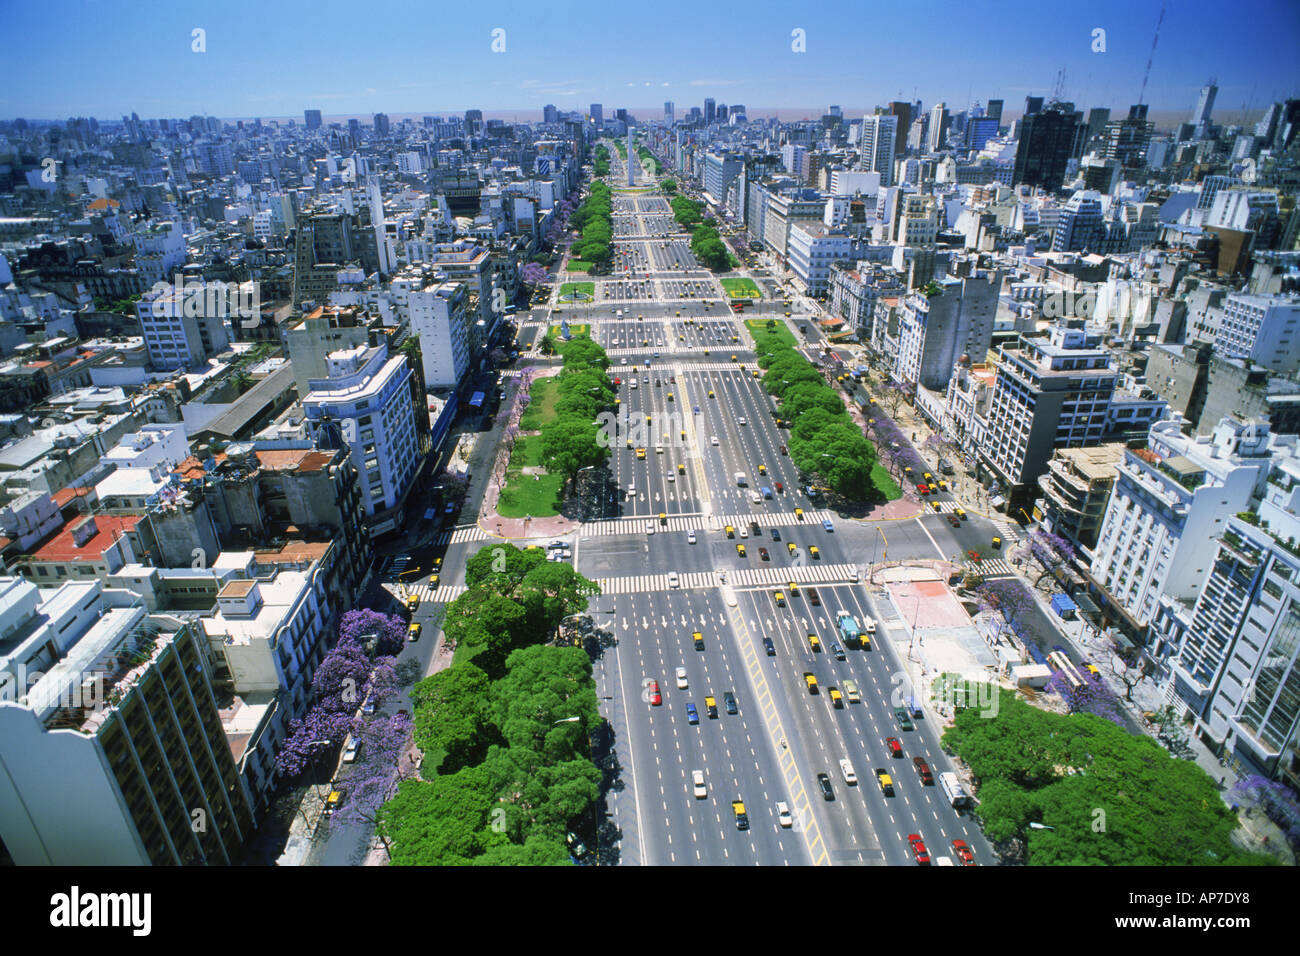 An overview of buenos aires